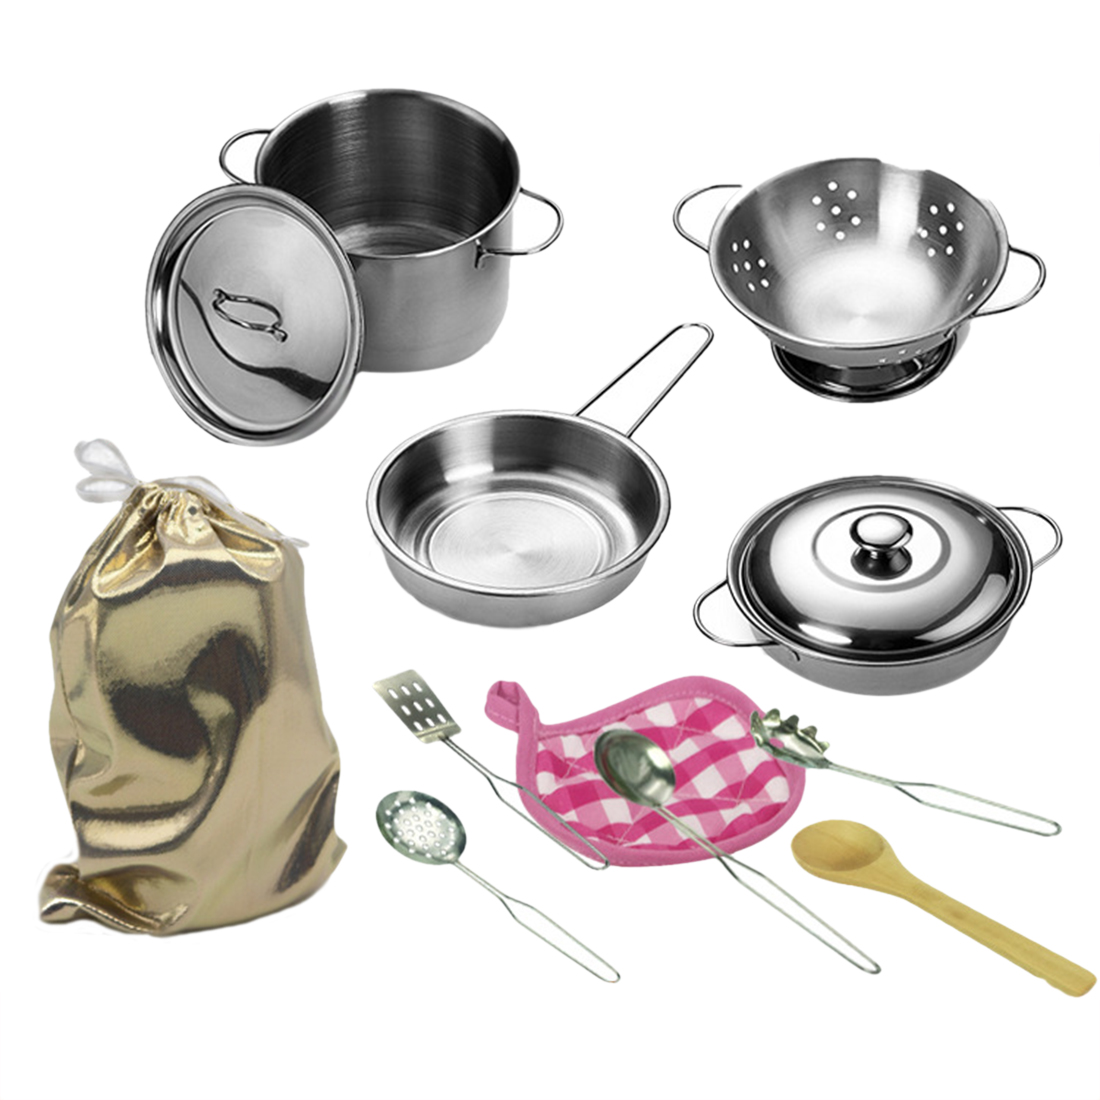 12pcs/set Kids Kitchen Set Stainless Steel Pretend Play Kitchen Cooking Toys Educational Kids Toy Cooking Pots Children Pans